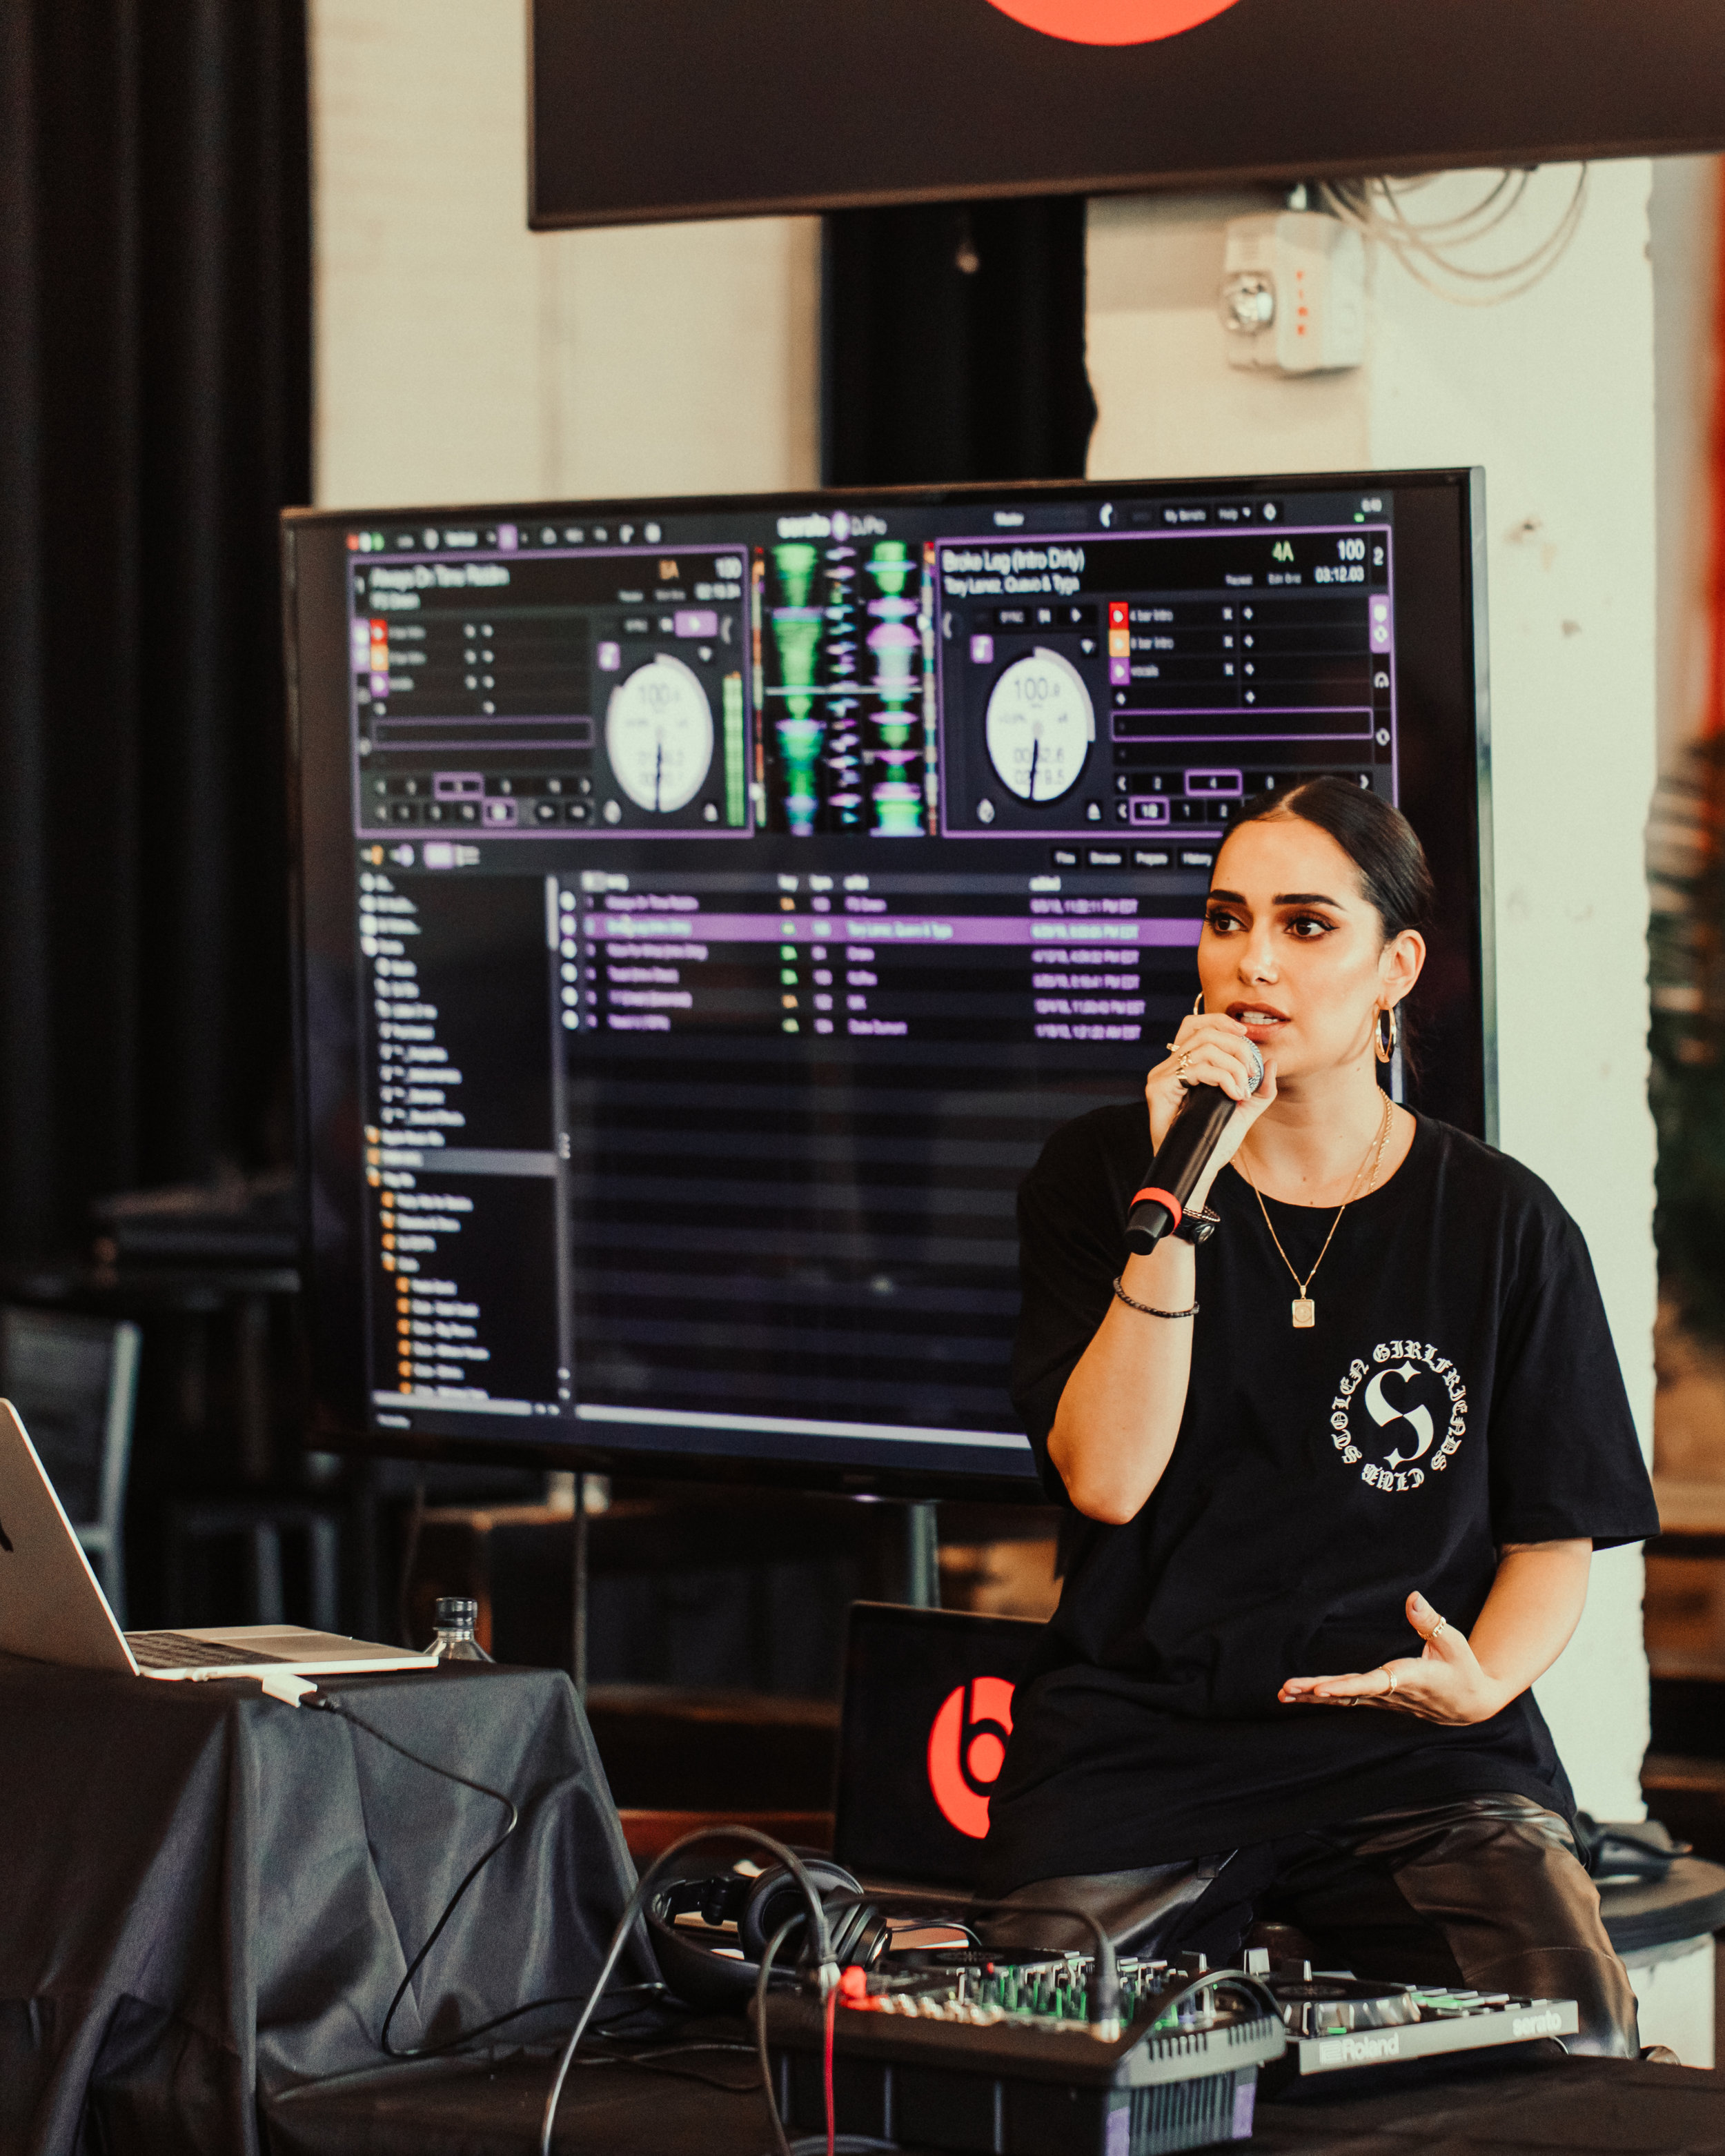 The end of the workshop concluded with a talk that included topics like what to expect to face in the music industry as a female DJ and how to properly prepare and deal with those issues.